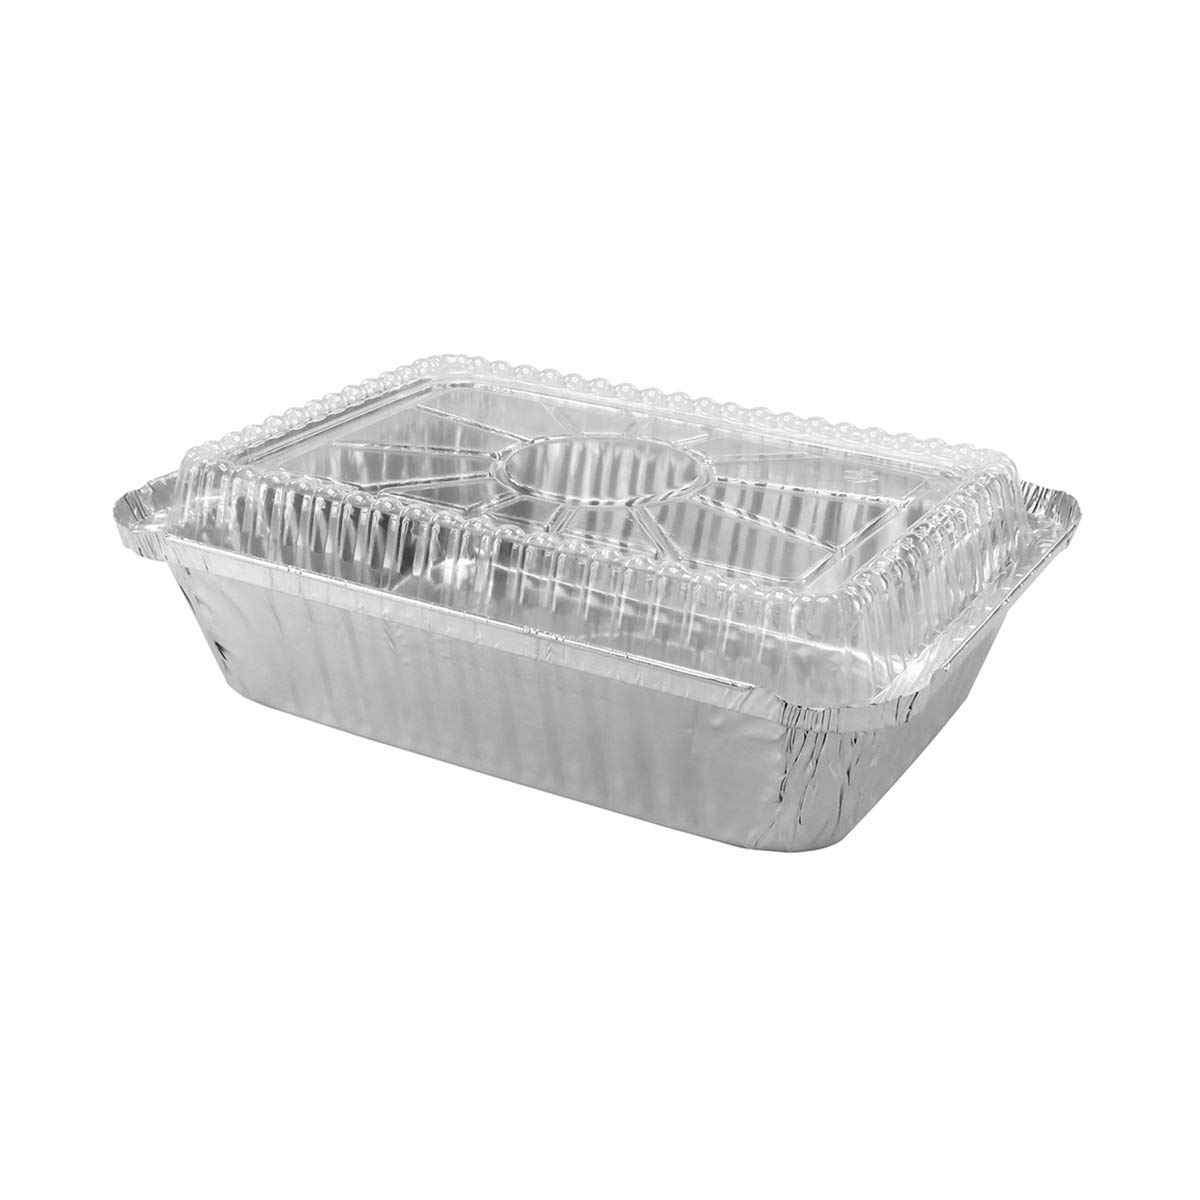 Disposable Aluminum 2 1/4 Lb. Food Storage Pan with Clear Dome Lid #250P (250)